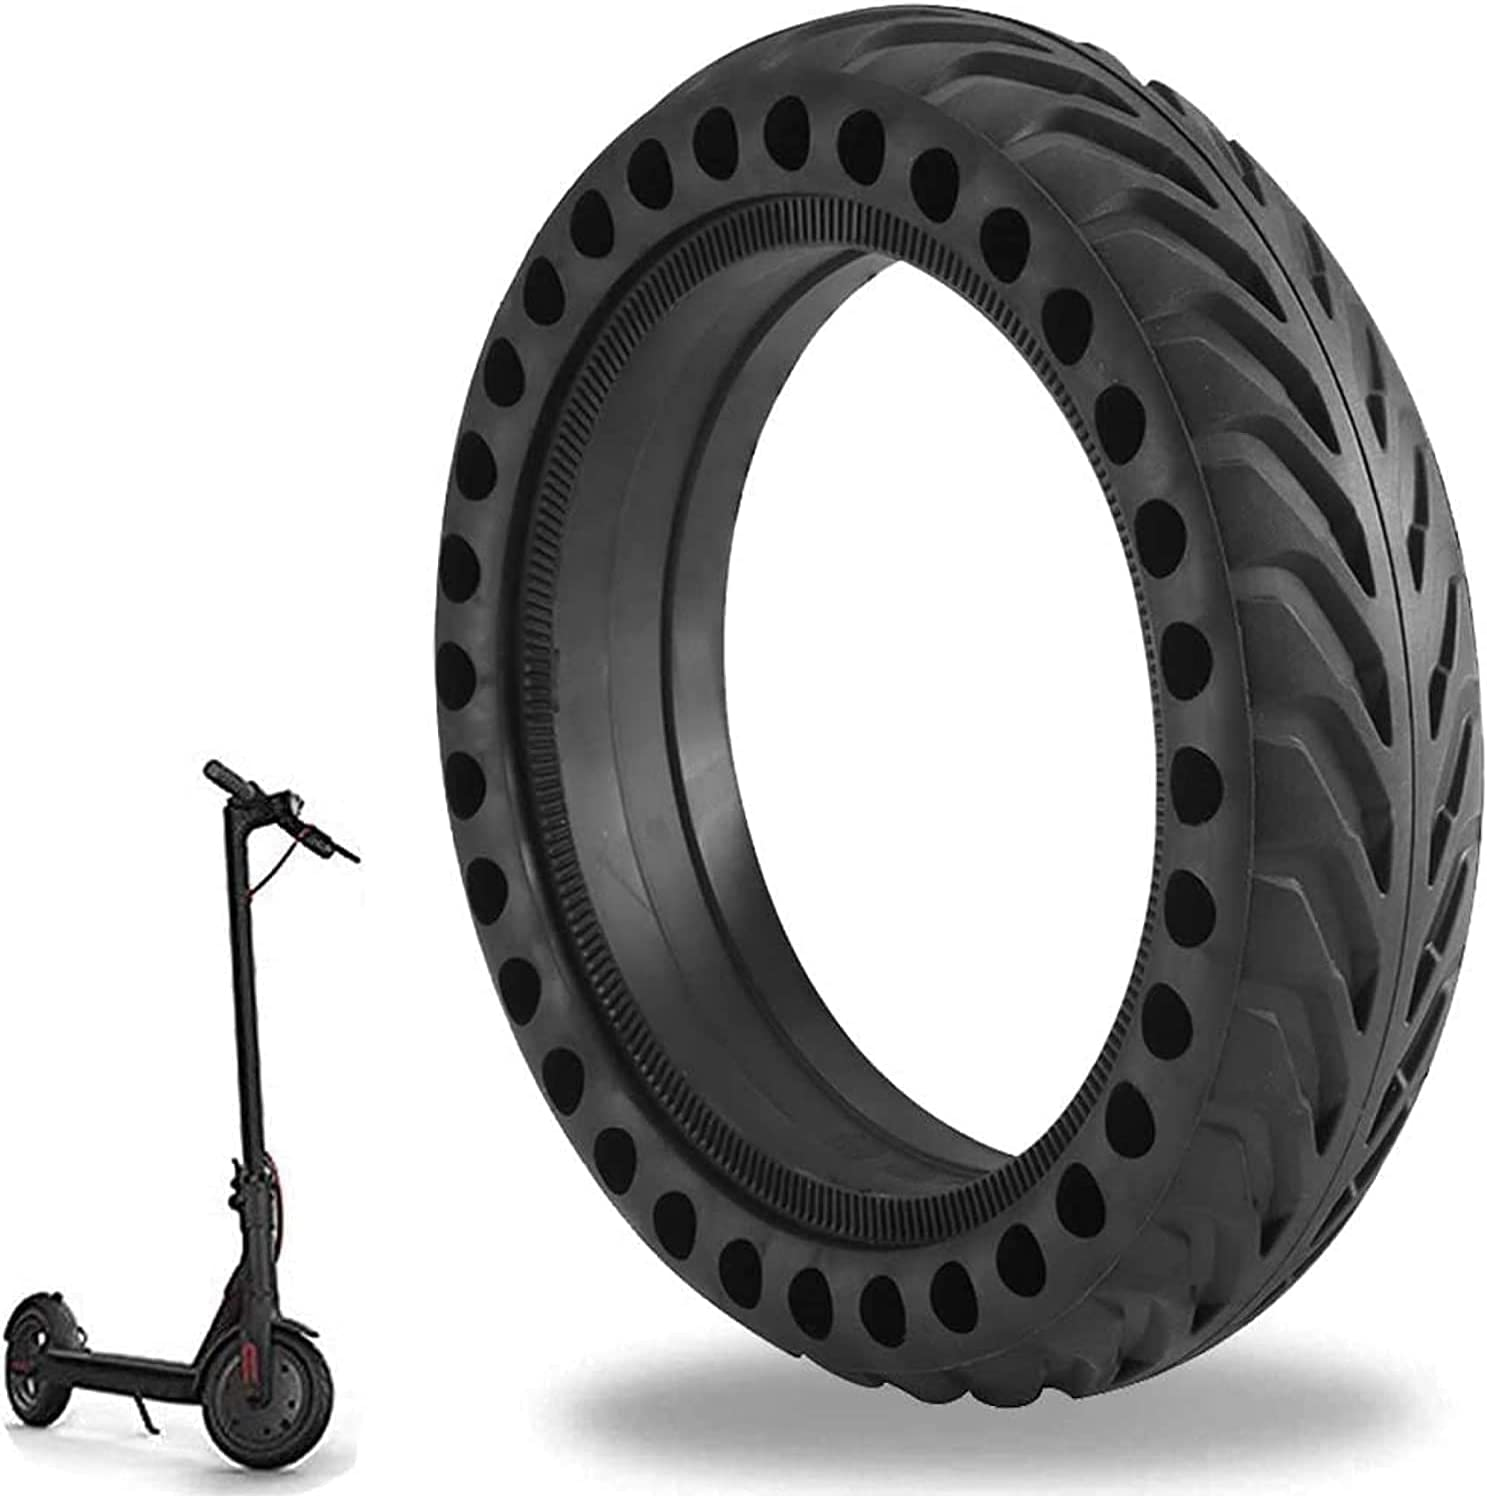 BIAN-63 New popularity Electric Scooter Tires 10x2.50 Explosion-Proo New item Honeycomb